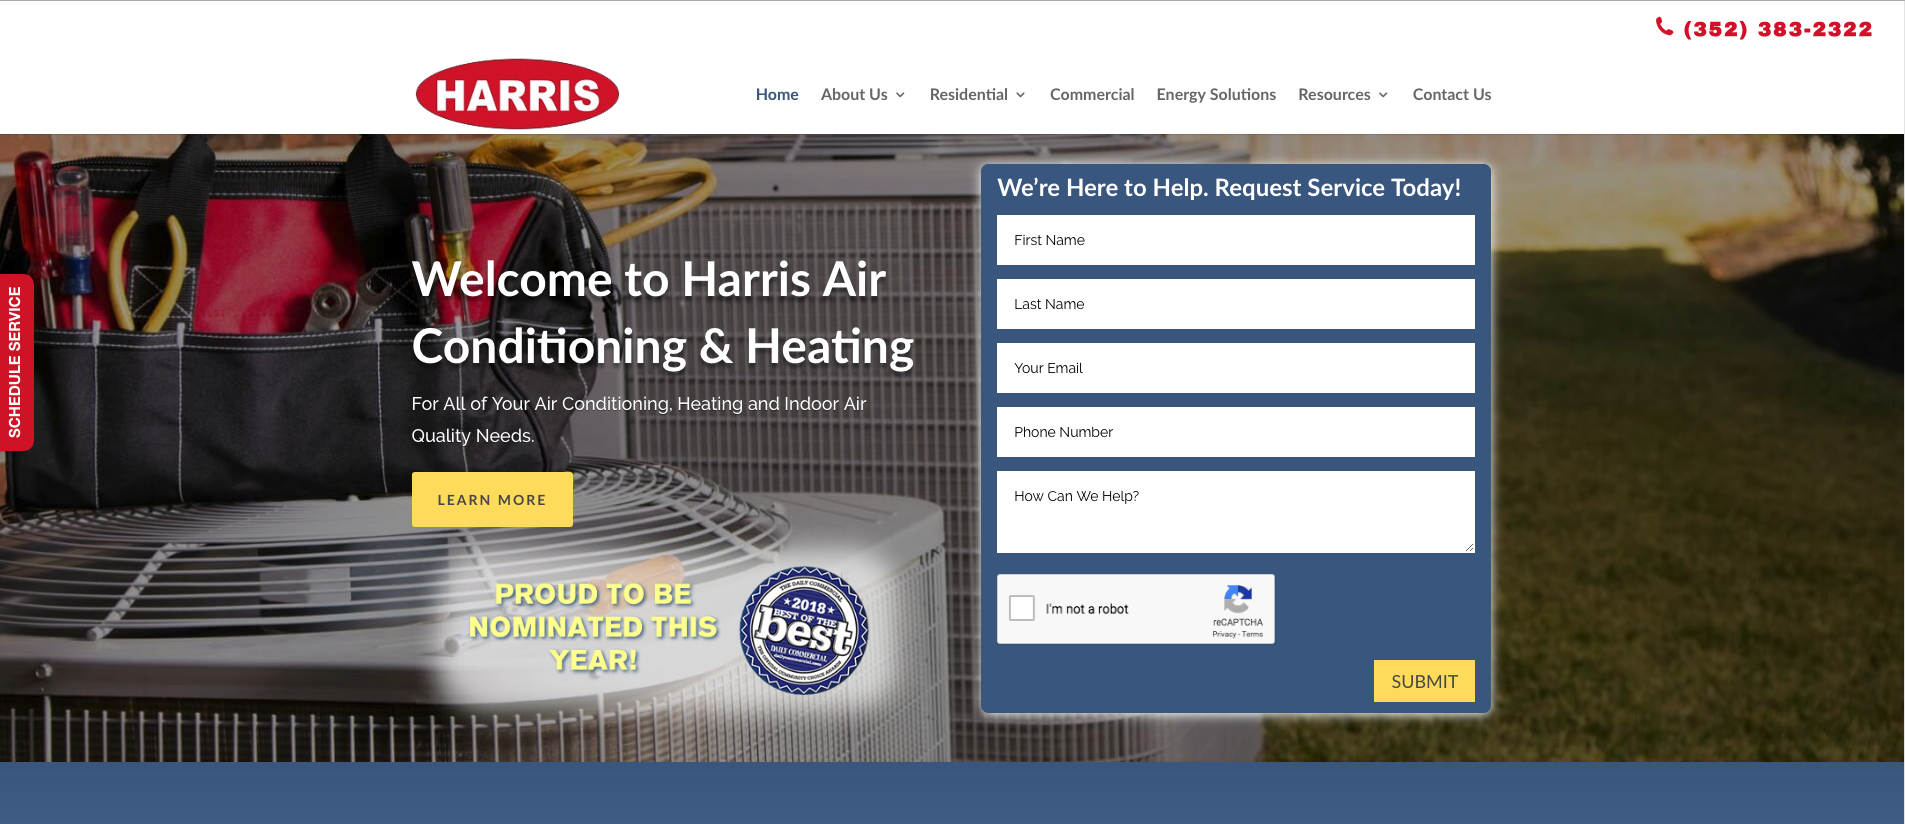 Harris Air Conditioning & Heating